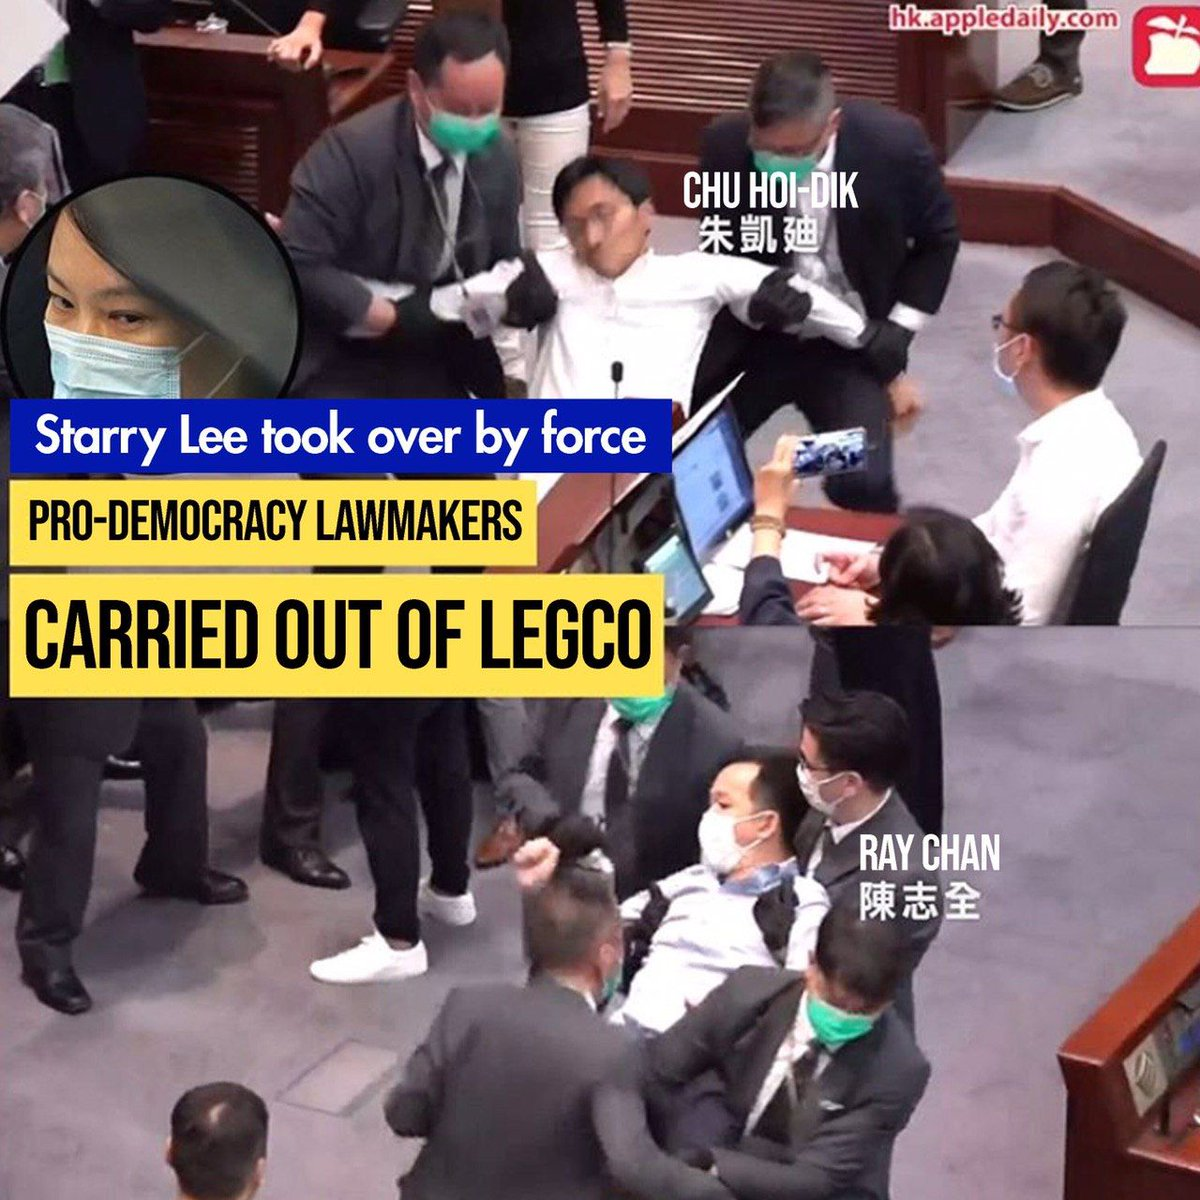 As a #HongKonger, I'm sad to learn that an Australian university is doing what #HongKong's pro #Beijing nationalists'd done to bring in totalitarianism that killed the city lately.  To pick on someone speaking for the oppressed makes one an equal evil as the oppressor.pic.twitter.com/RLu3VtXETf